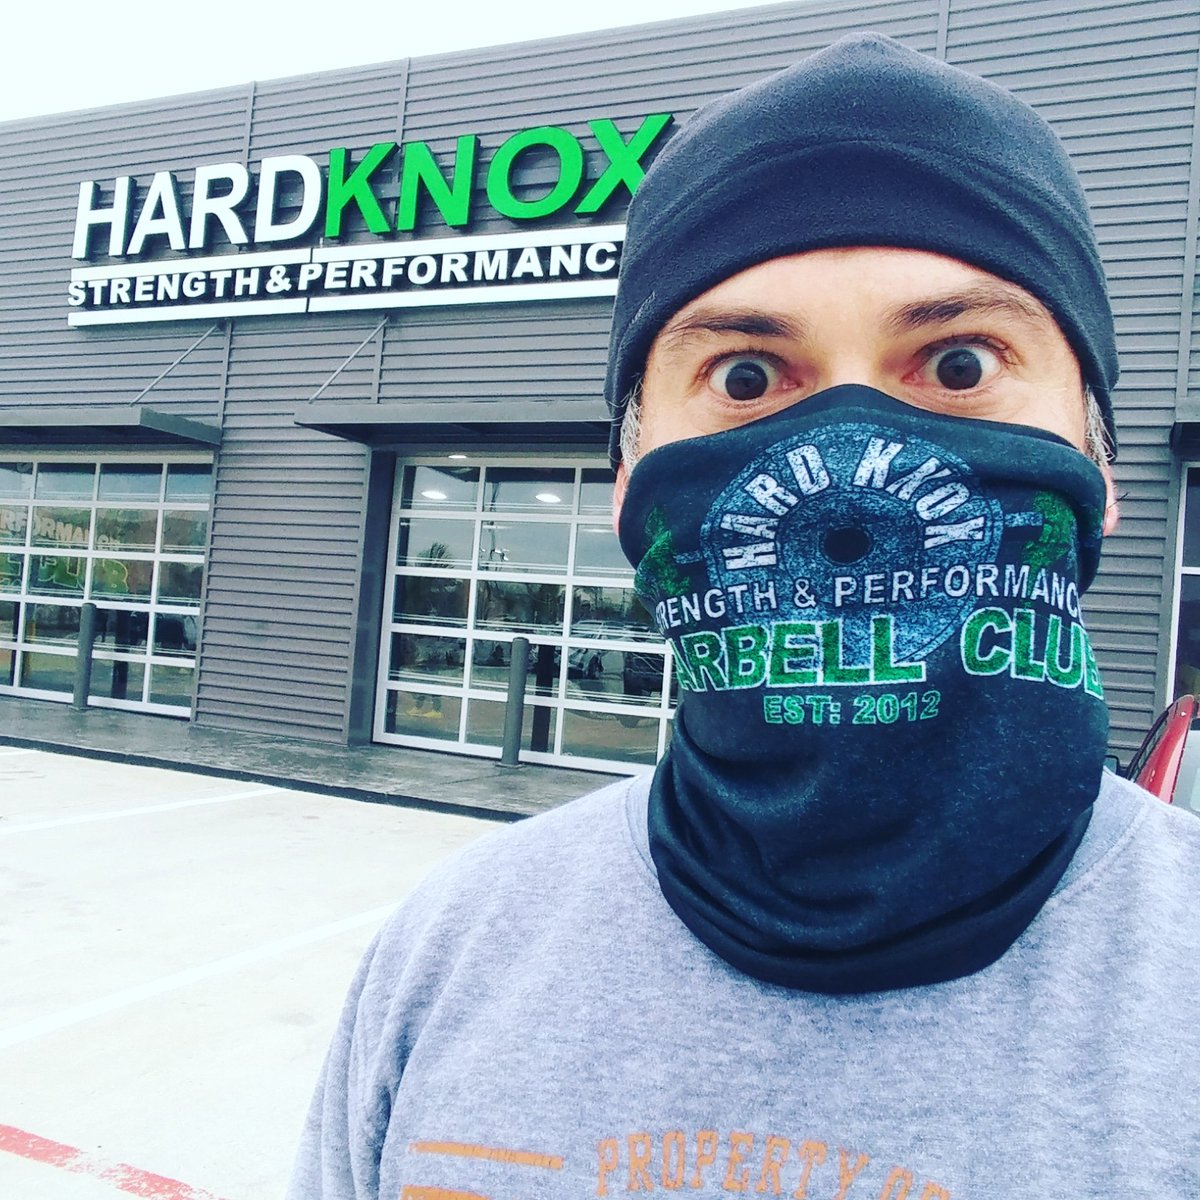 It's cold!⛄ 🚴🚴🚴 🏋🏋🏋 🏃🏃🏃 #HardknoxMornings #HardknoxStrong #workout #workoutmotivation #gym #barbell #bike #lift #run #running #runner #runningmotivation #TeamULTRA #LiveULTRA #doitforthecheers #Monday #MondayMotivation #MondayMadness